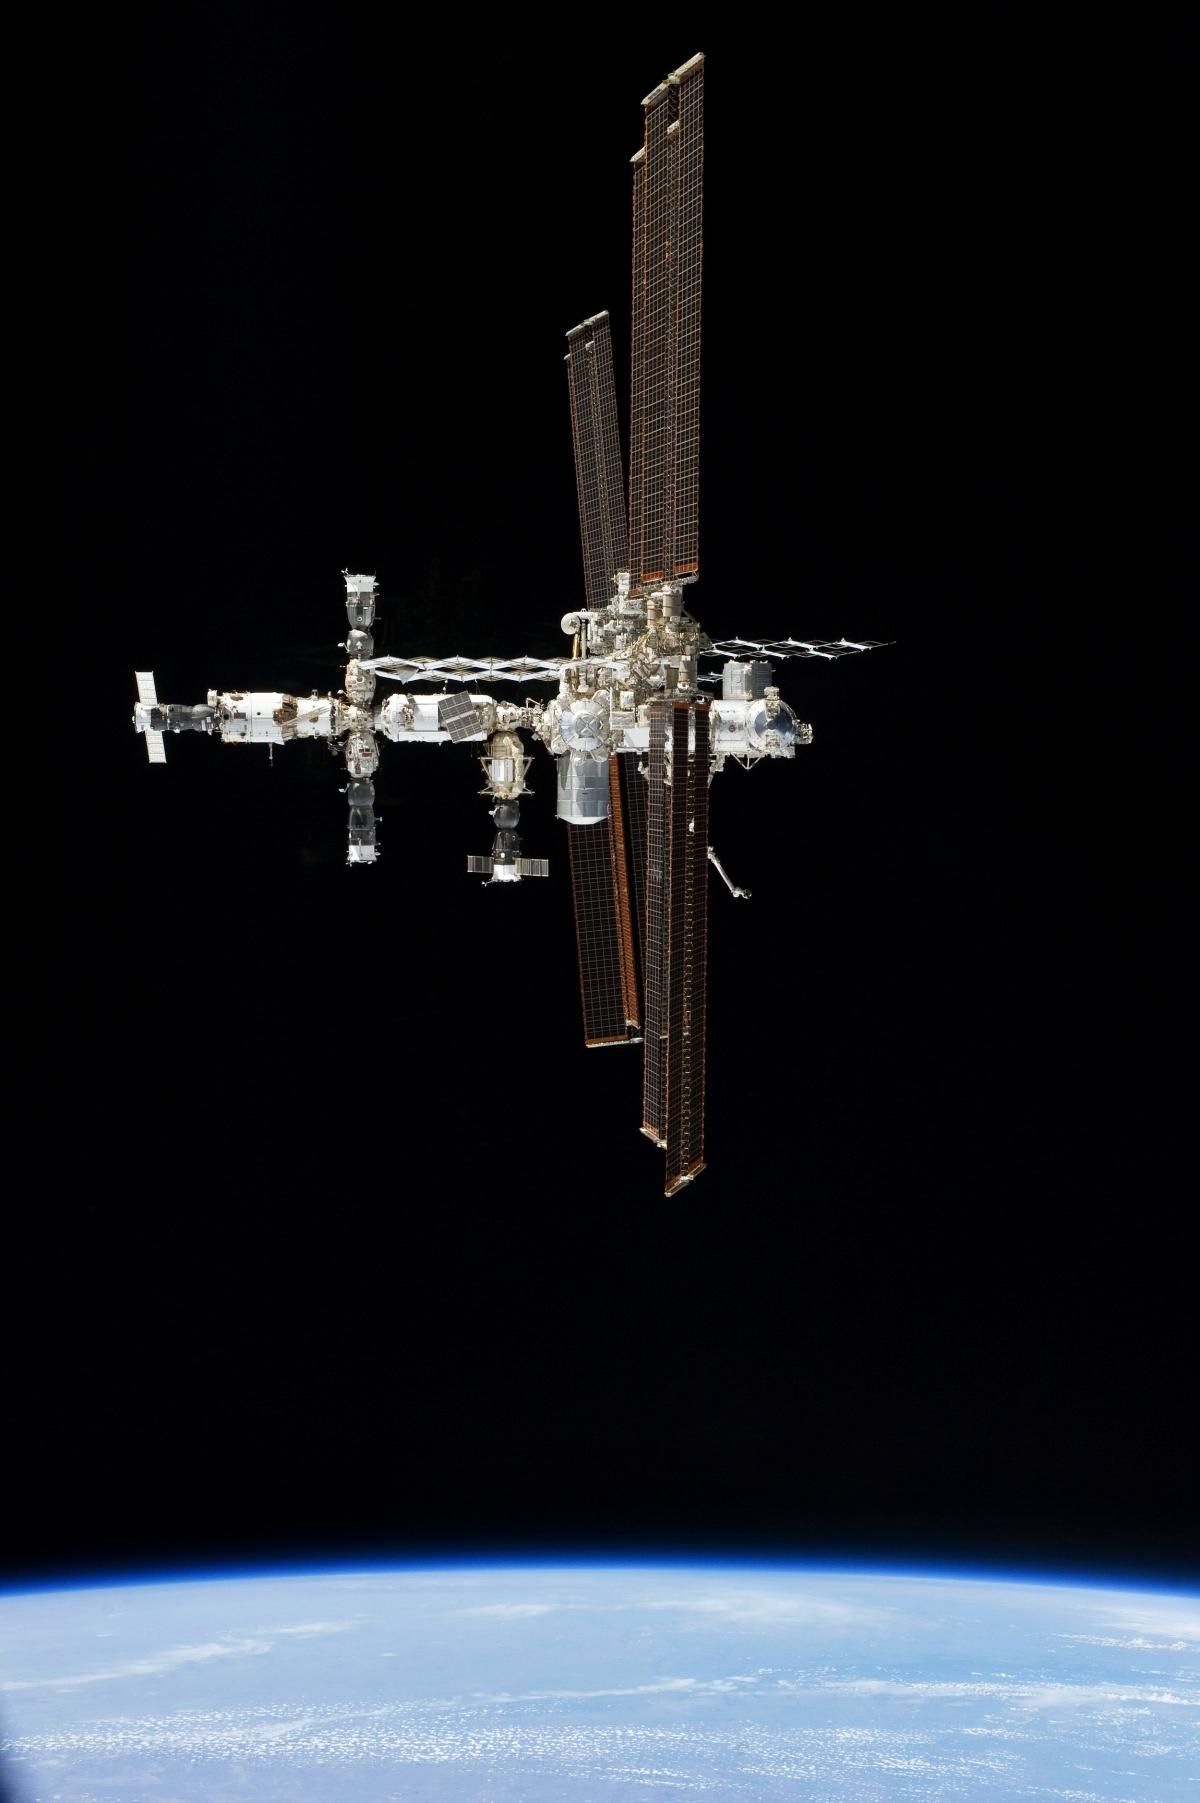 This picture of the International Space Station was photographed from the space shuttle Atlantis in the early hours of July 19, 2011. Original from NASA.  #392646